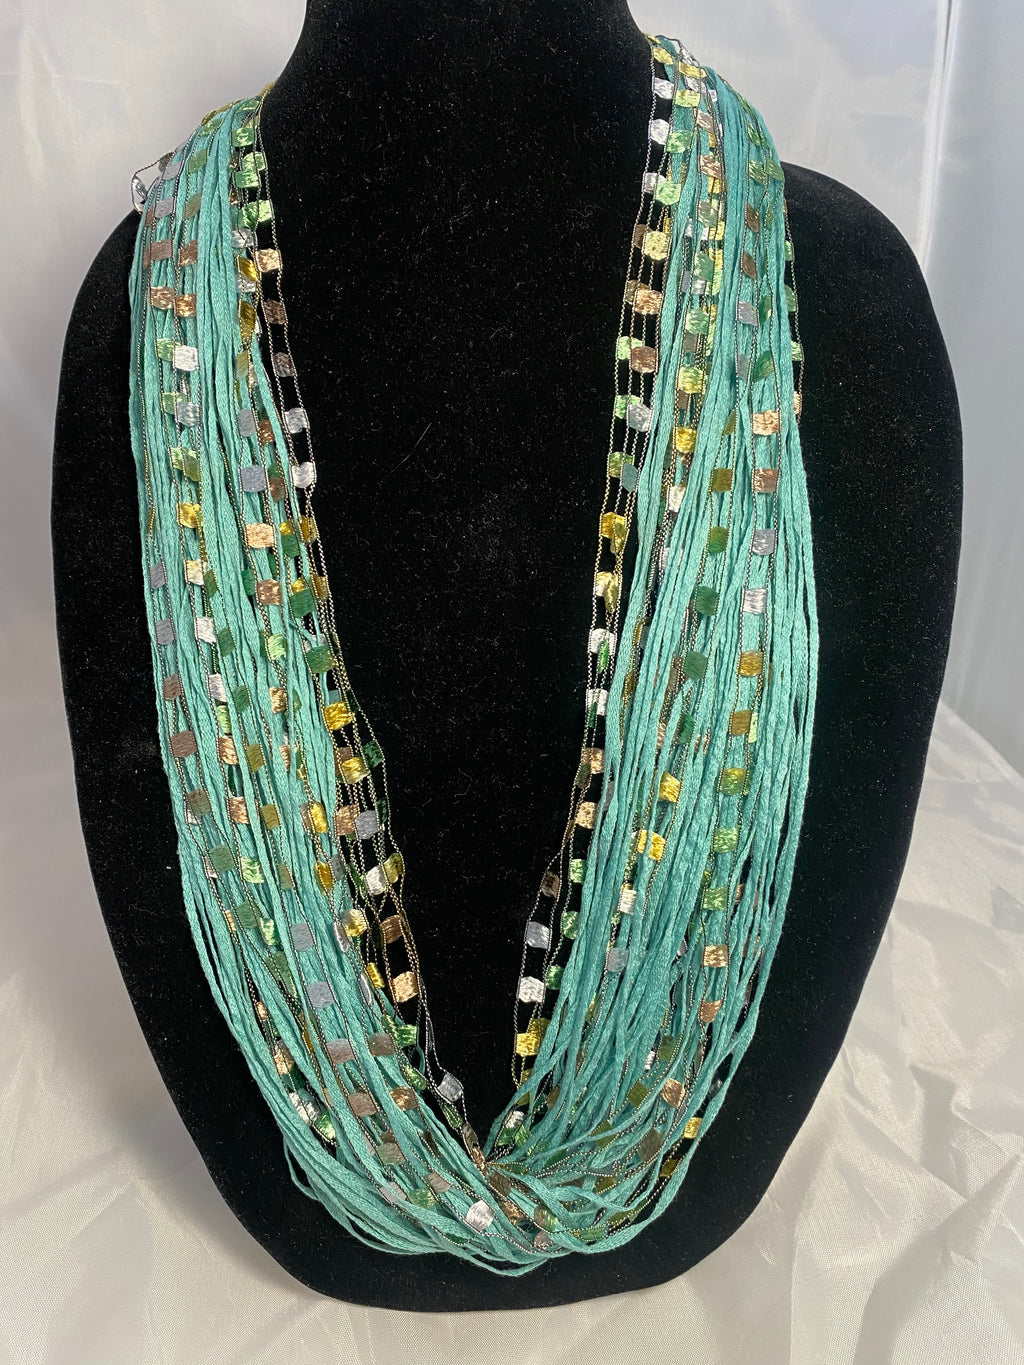 Aqua | Jewel | Fiber Necklace